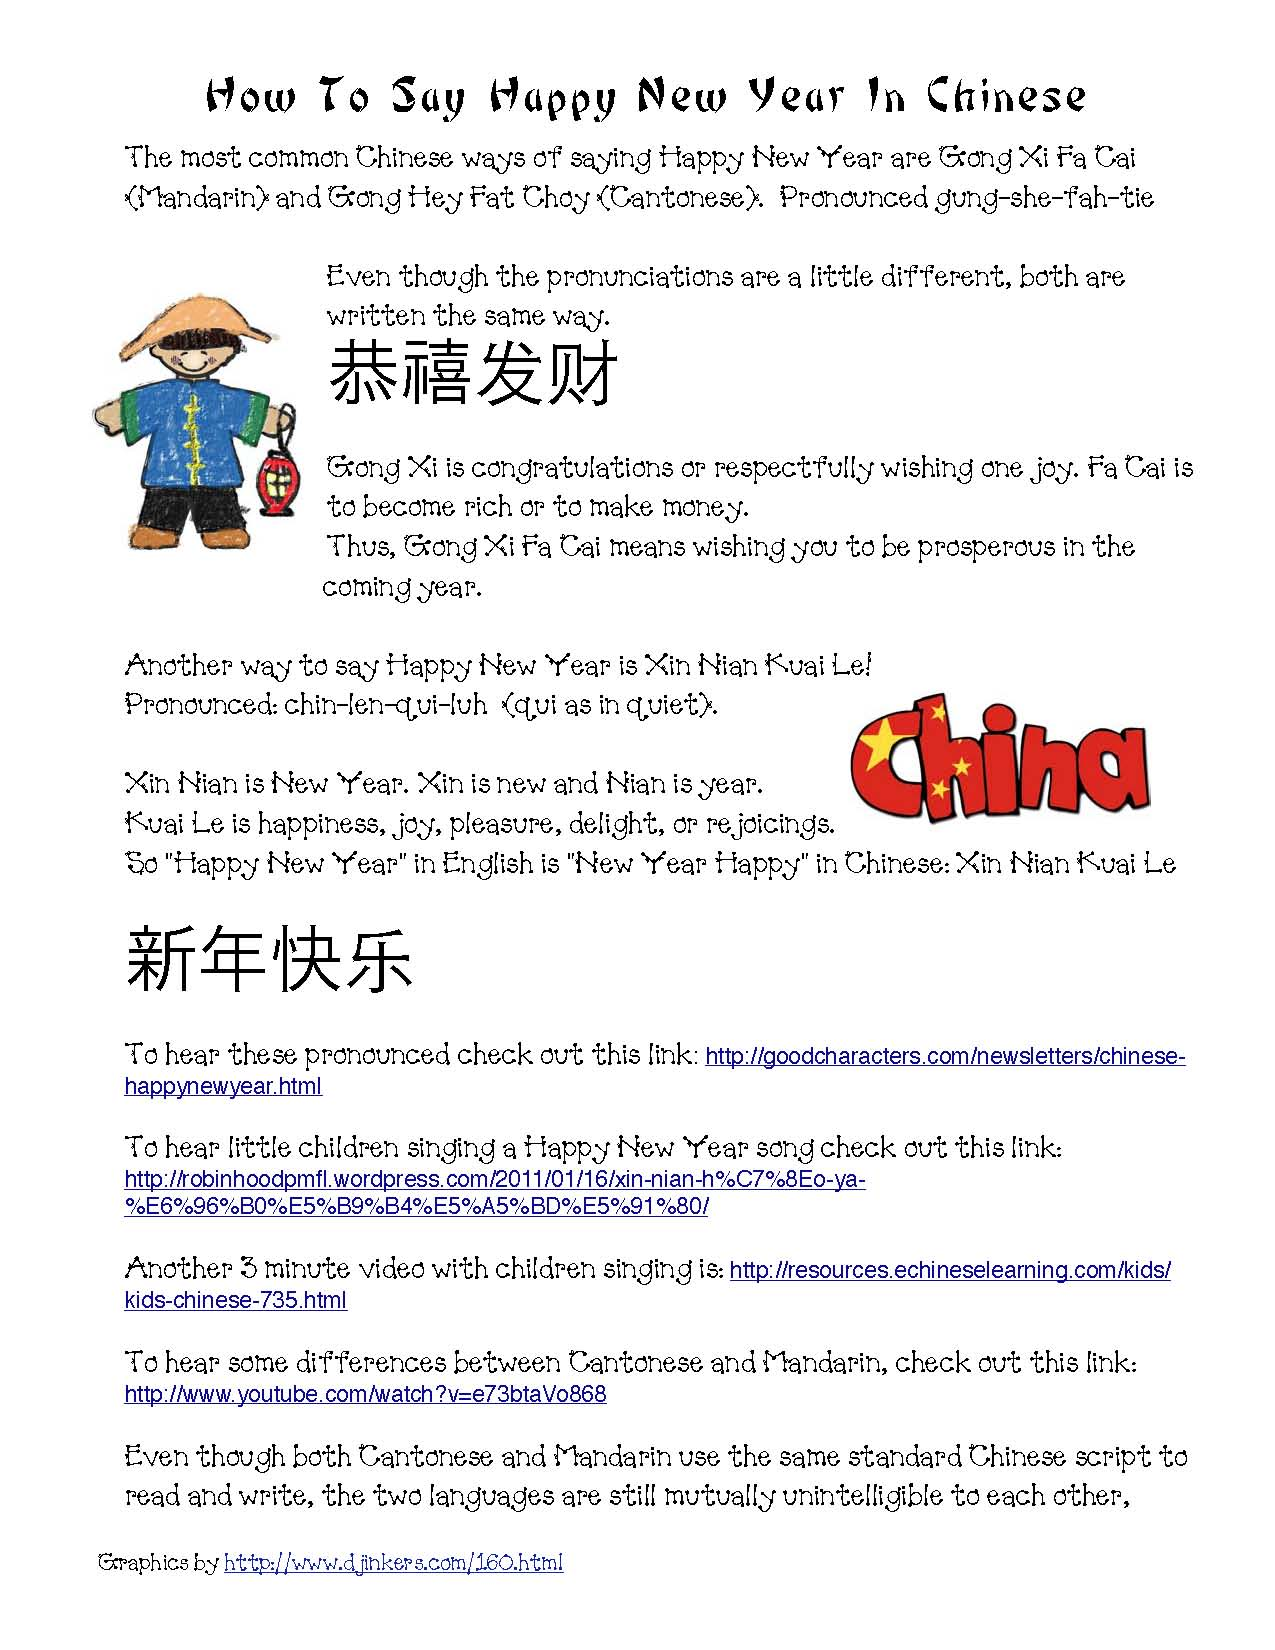 chinese new year activities, ideas for chinese new year, chinese new year crafts, spring festival activities, lunar new year activities, china activies, chinese new year alphabet cards, chinese new year bookmarks, chinese new year puzzles, chinese new year writing prompts, chinese new year crafts, year of the horse activities, dragon activites, snake activities, chinese new year crafts, chinese new year bibliography, chinese new year books, fan crafts, lantern crafts, lantern pattern,